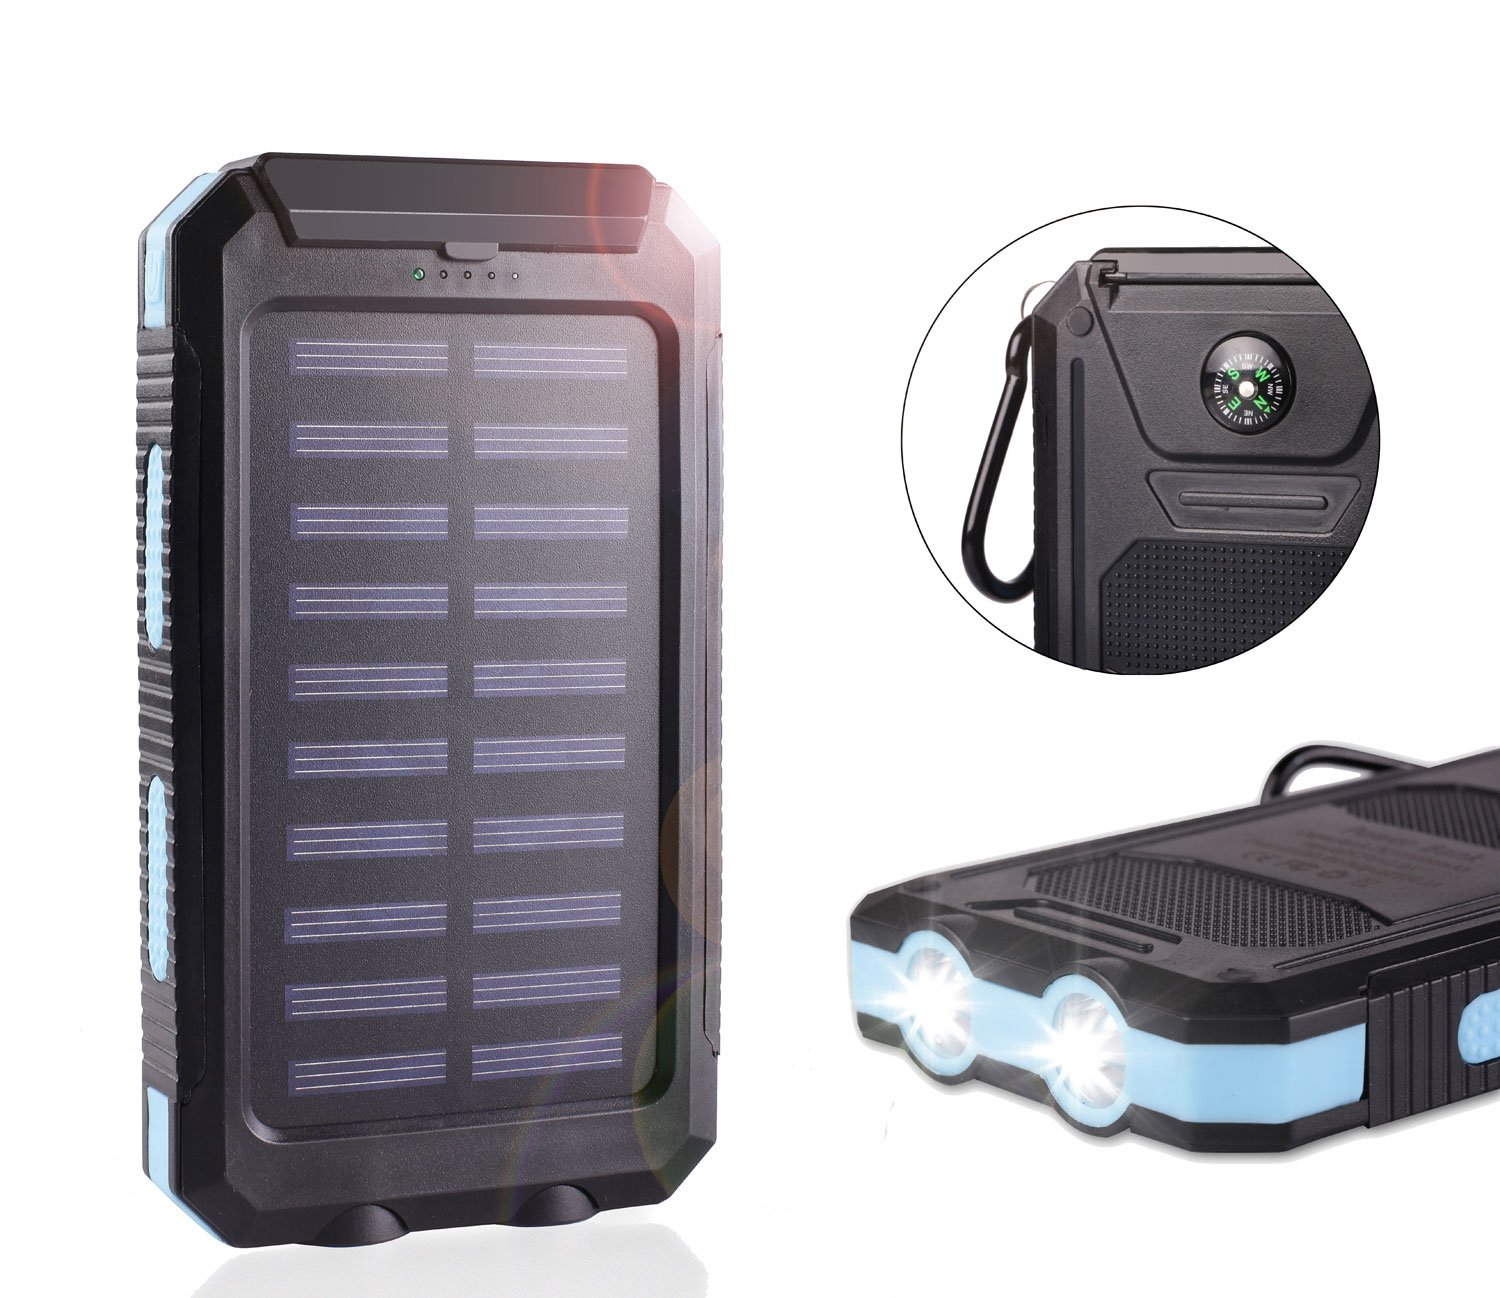 Solar Power Bank 10000mAh Waterproof with Compass Dual USB Battery Solar Charger Battery Fast Charger External Battery Pack Solar Phone Charger with LED Light for Cellphone iPhone Ipad Camera WNSOLAR